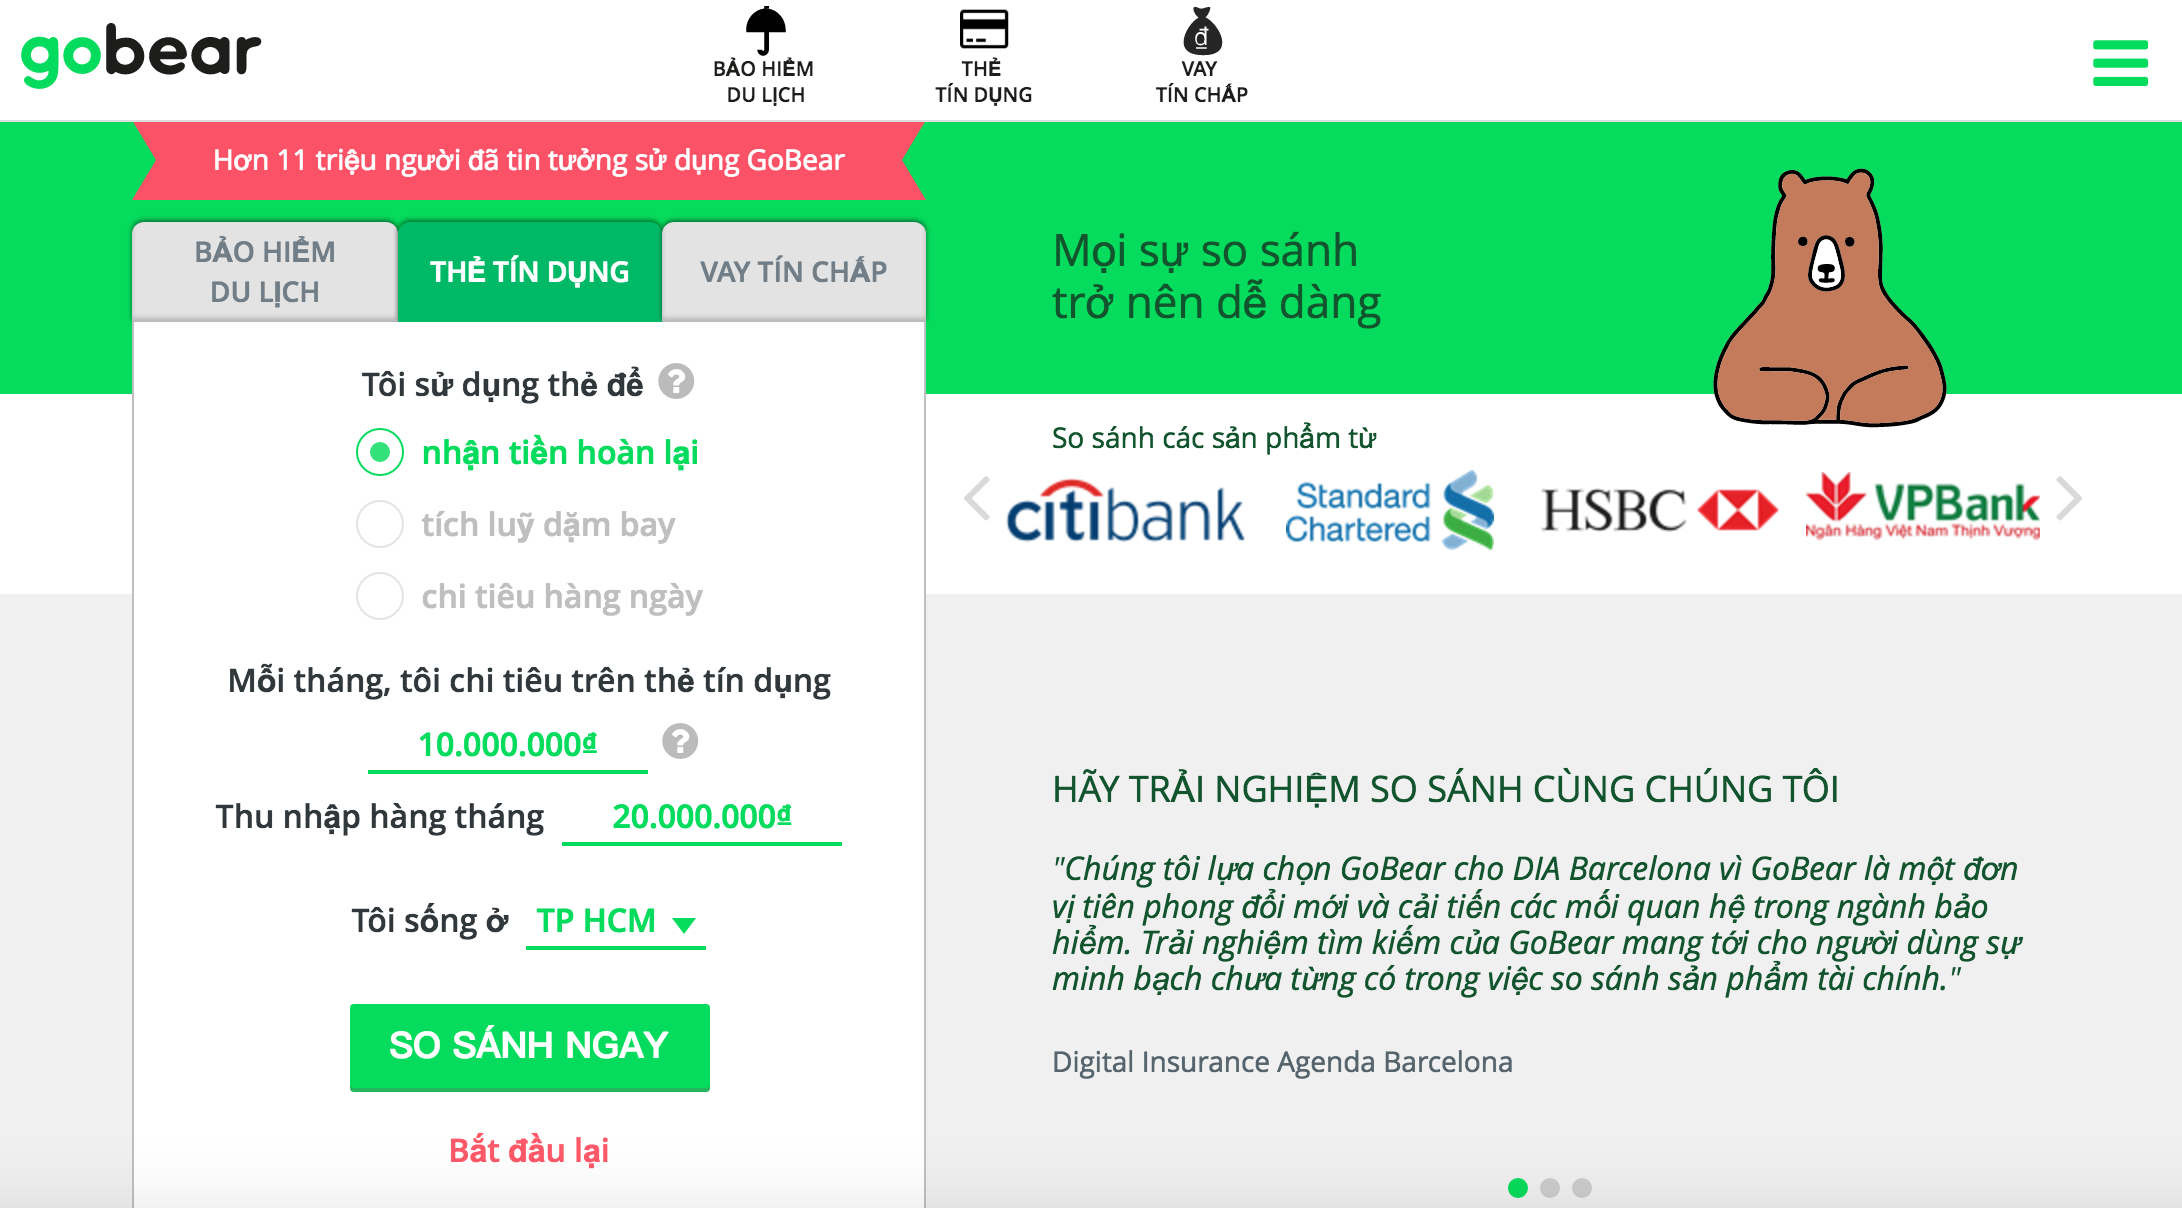 GoBear to launch unsecured loan awareness page